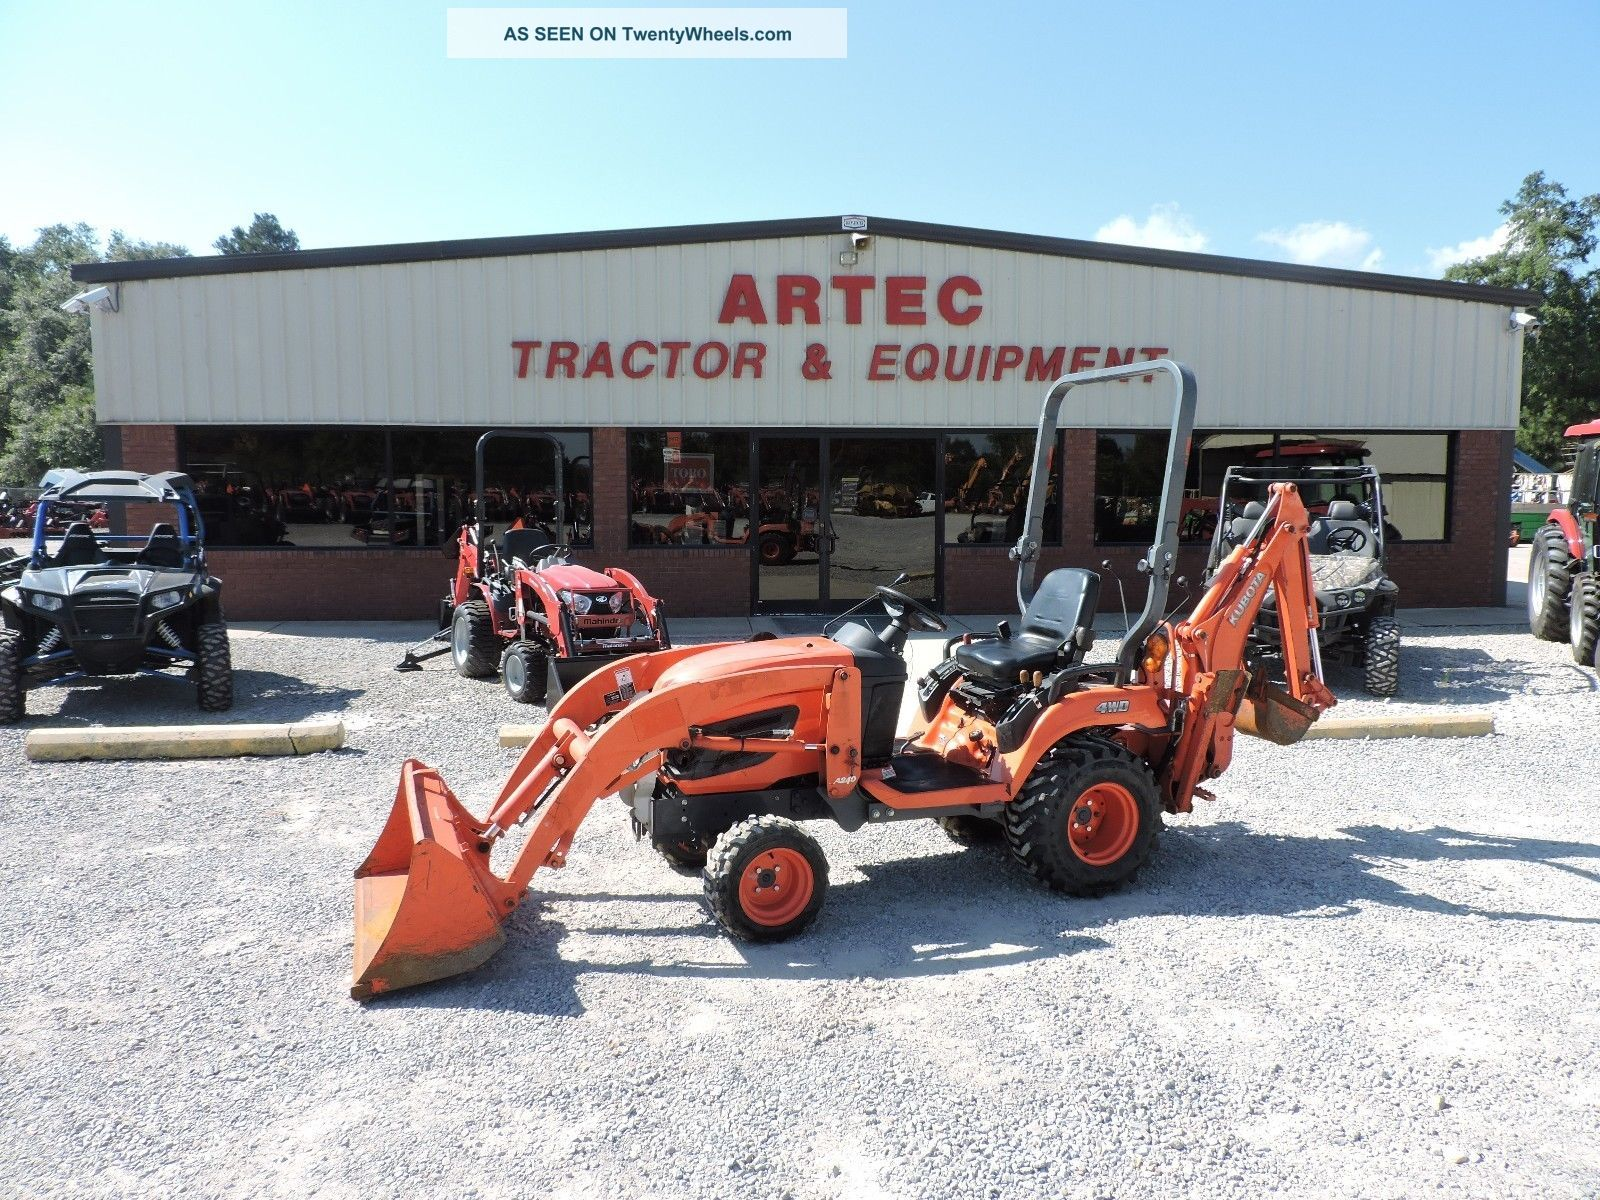 2012 Kubota Bx25d Tractor Loader Backhoe - Hst Transmission - 4x4 - Very Backhoe Loaders photo